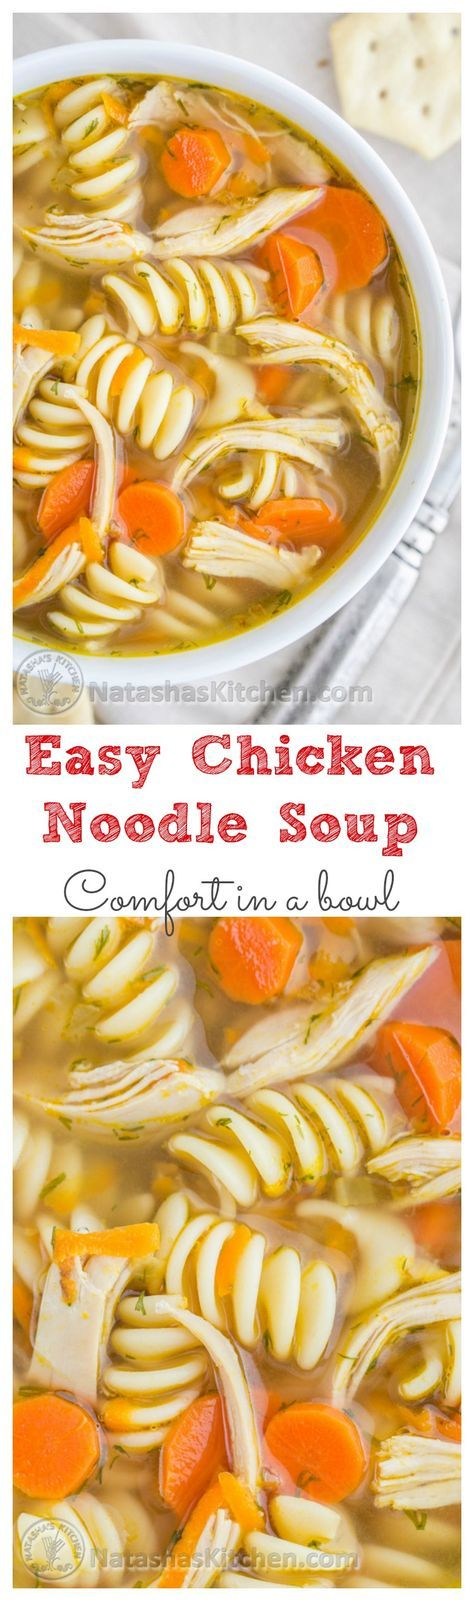 Easy and Delicious Chicken Noodle Soup. The secret is in the chicken thighs!!